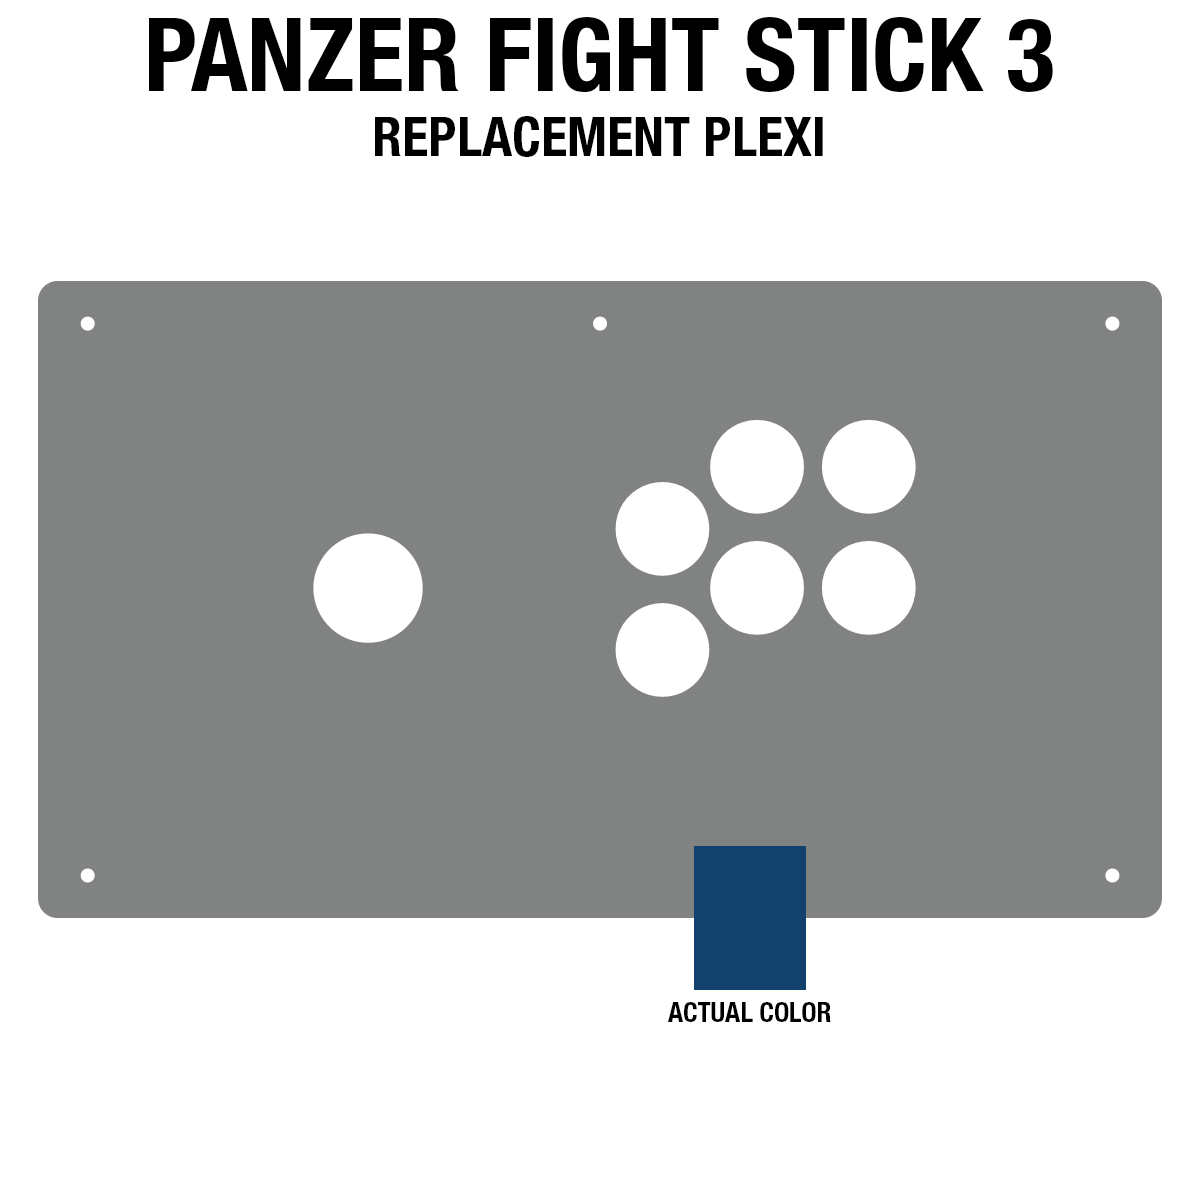 Panzer Fight Stick 3 [KOREAN EDITION] Plexi - Blue Frosted (6 Buttons)